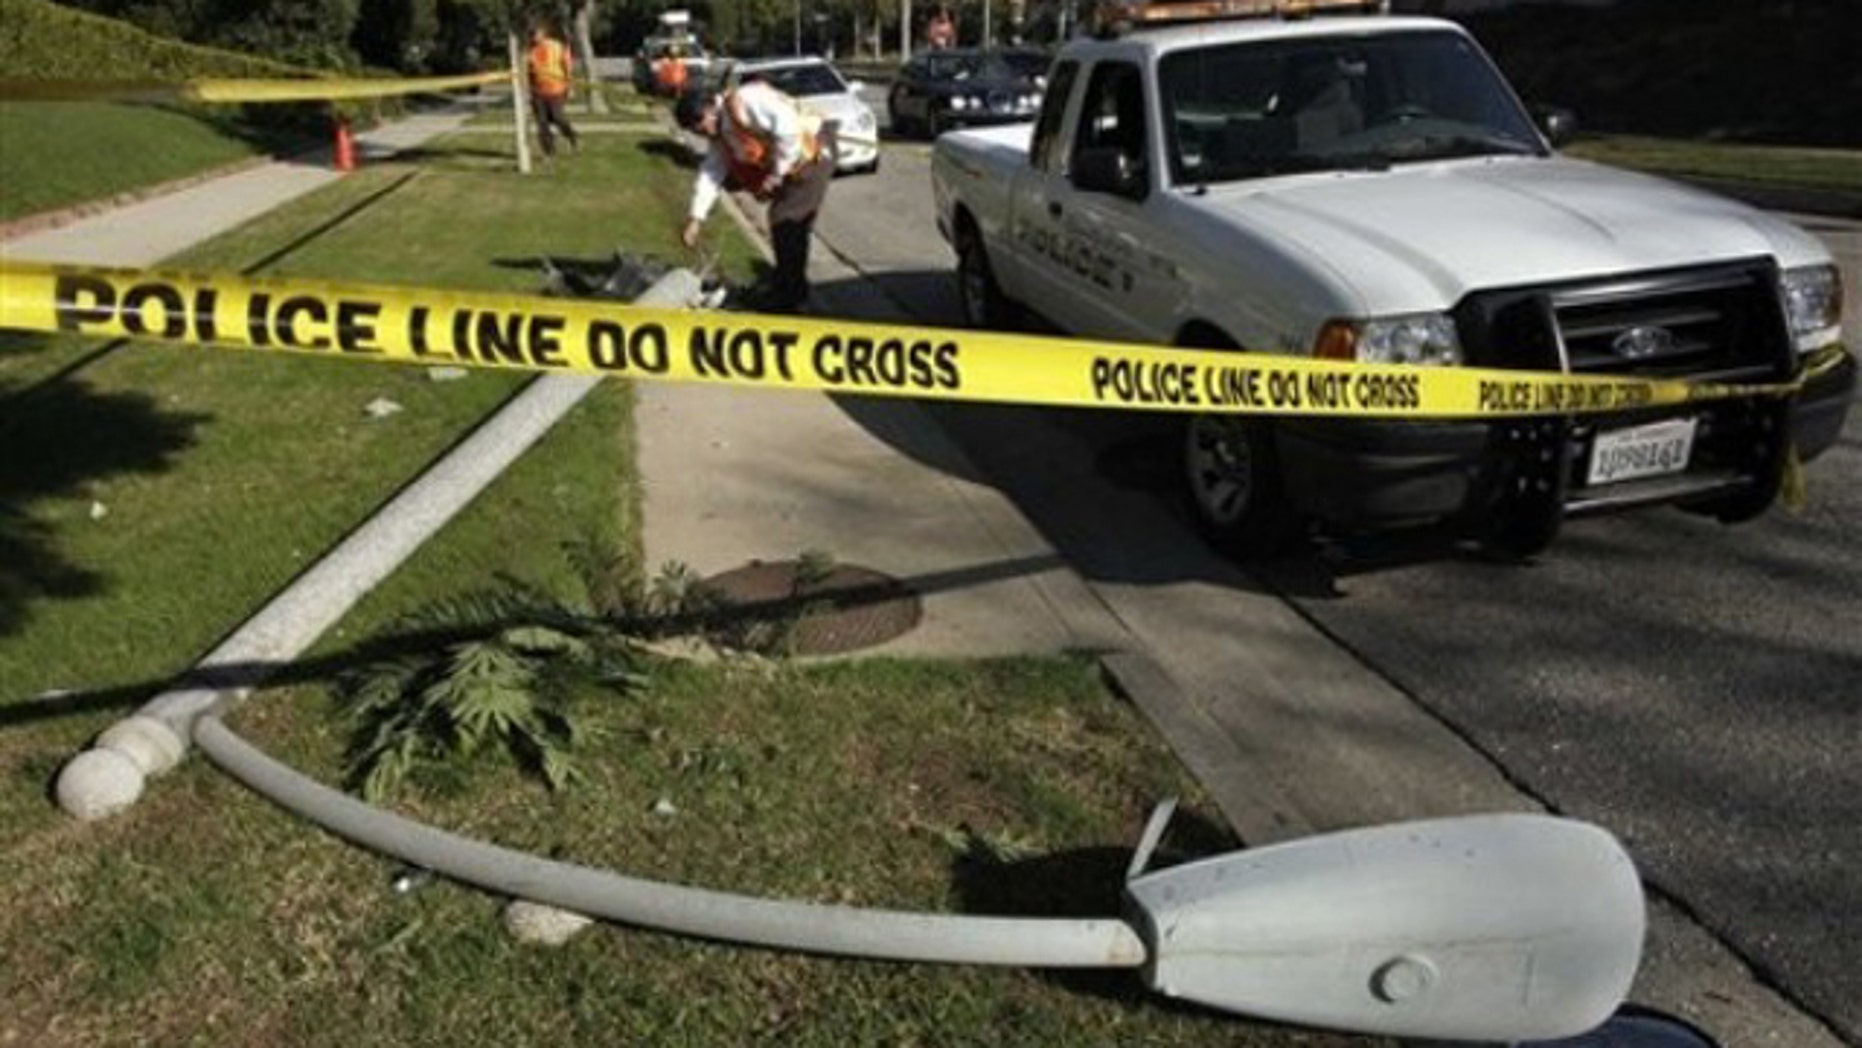 Nov. 16: A utility worker examines the site of the crash where Chasen was found inside her vehicle shot several times in the chest and killed, afterward crashing into this light pole (AP).